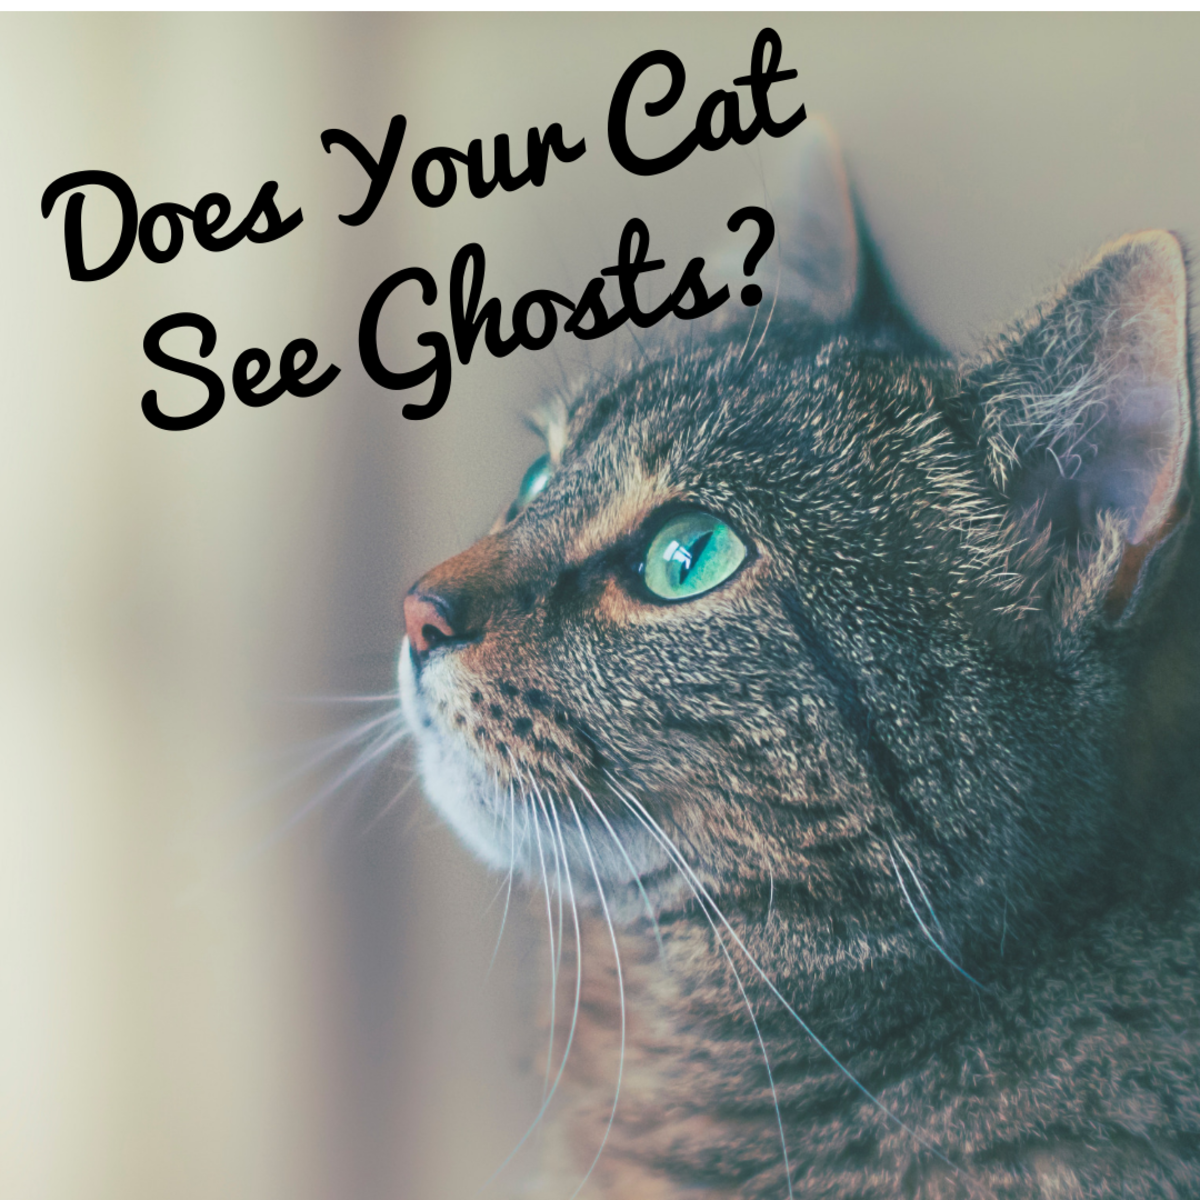 Do Cats See Ghosts? How to Tell If Your Cat Sees Spirits